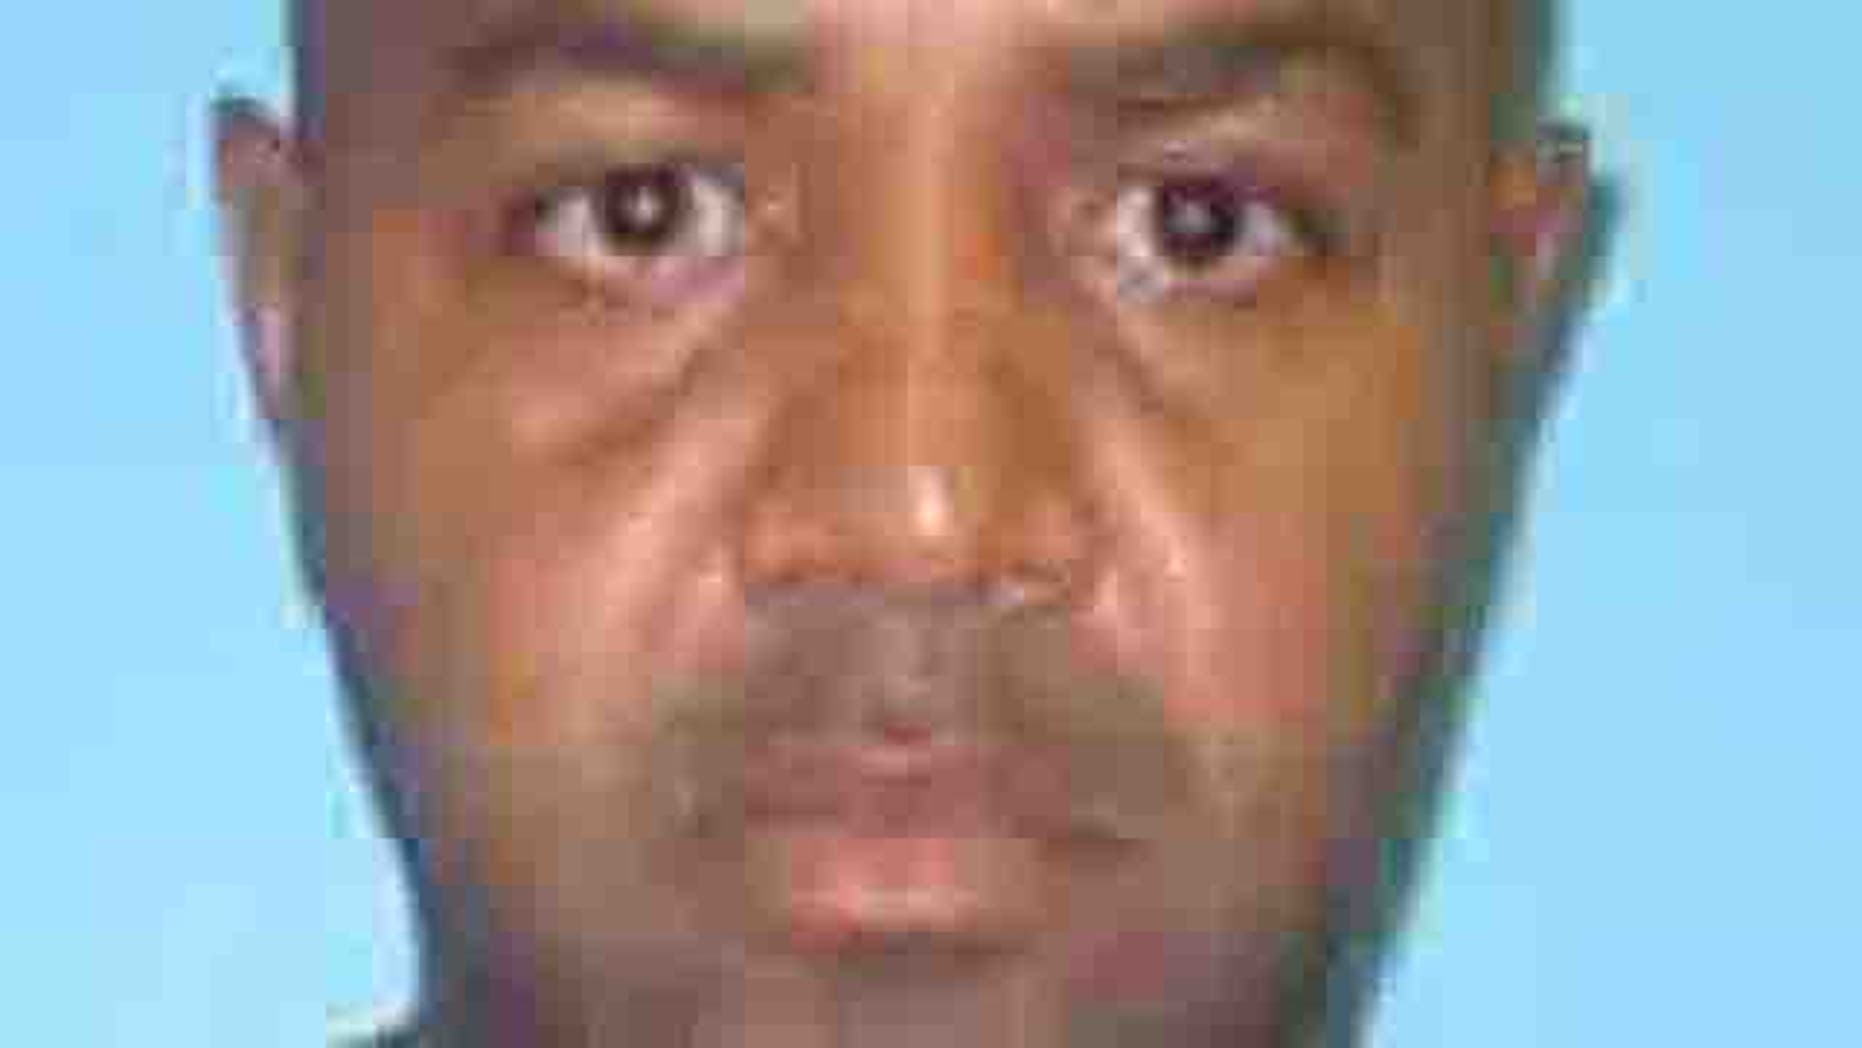 FILE: This photo provided by the Florida Department of Corrections shows Neal Evans.